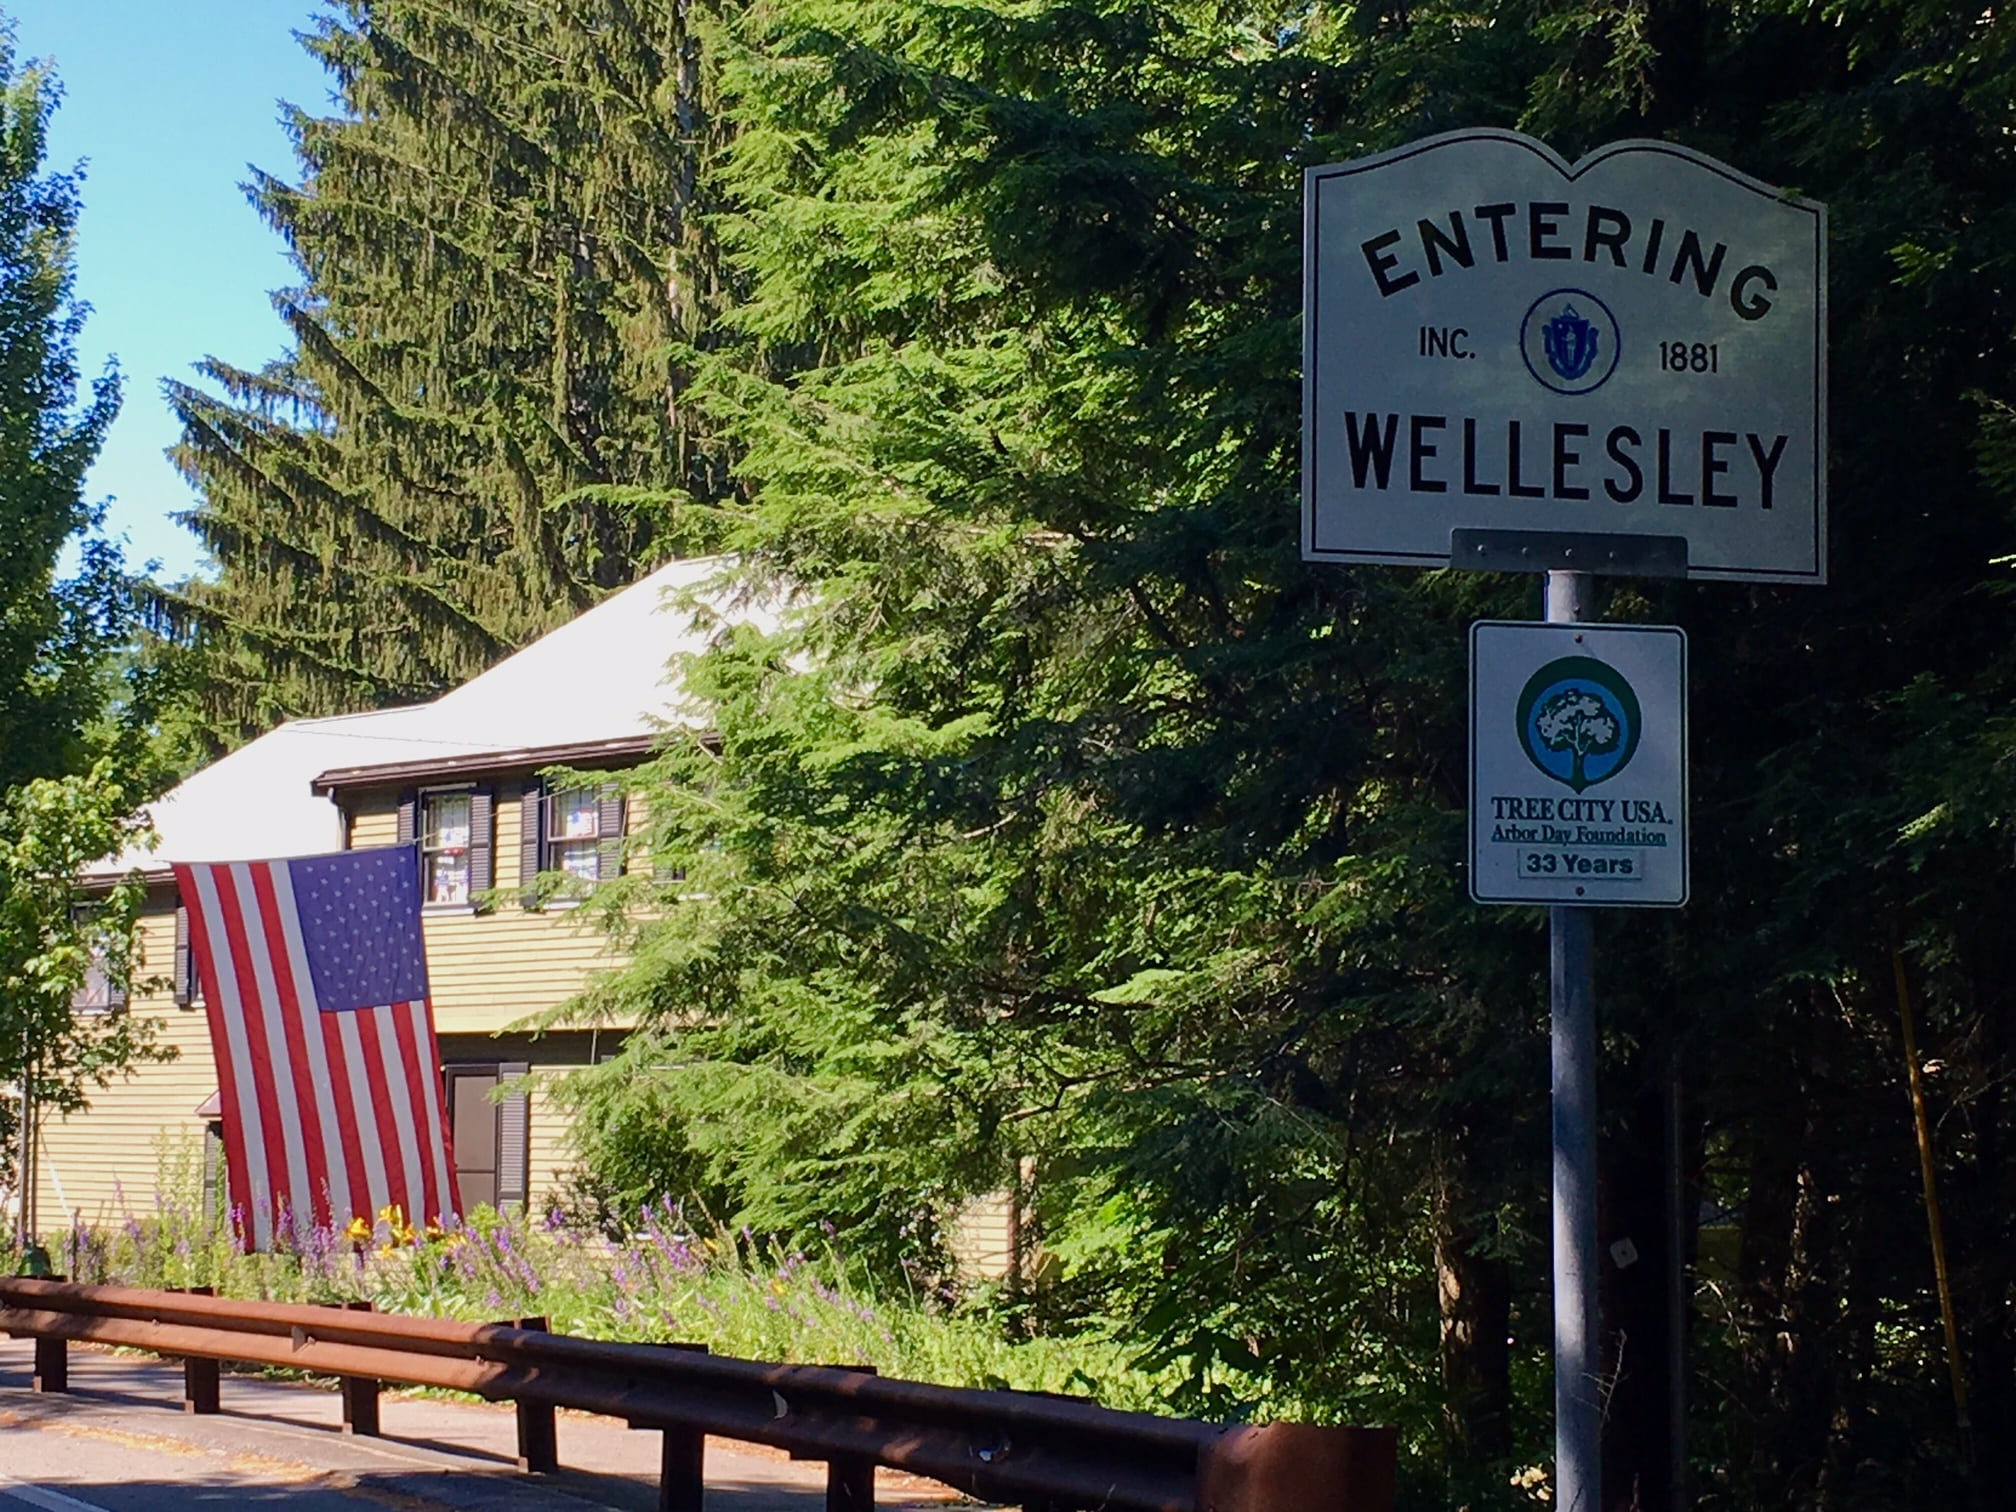 Wellesley American flag